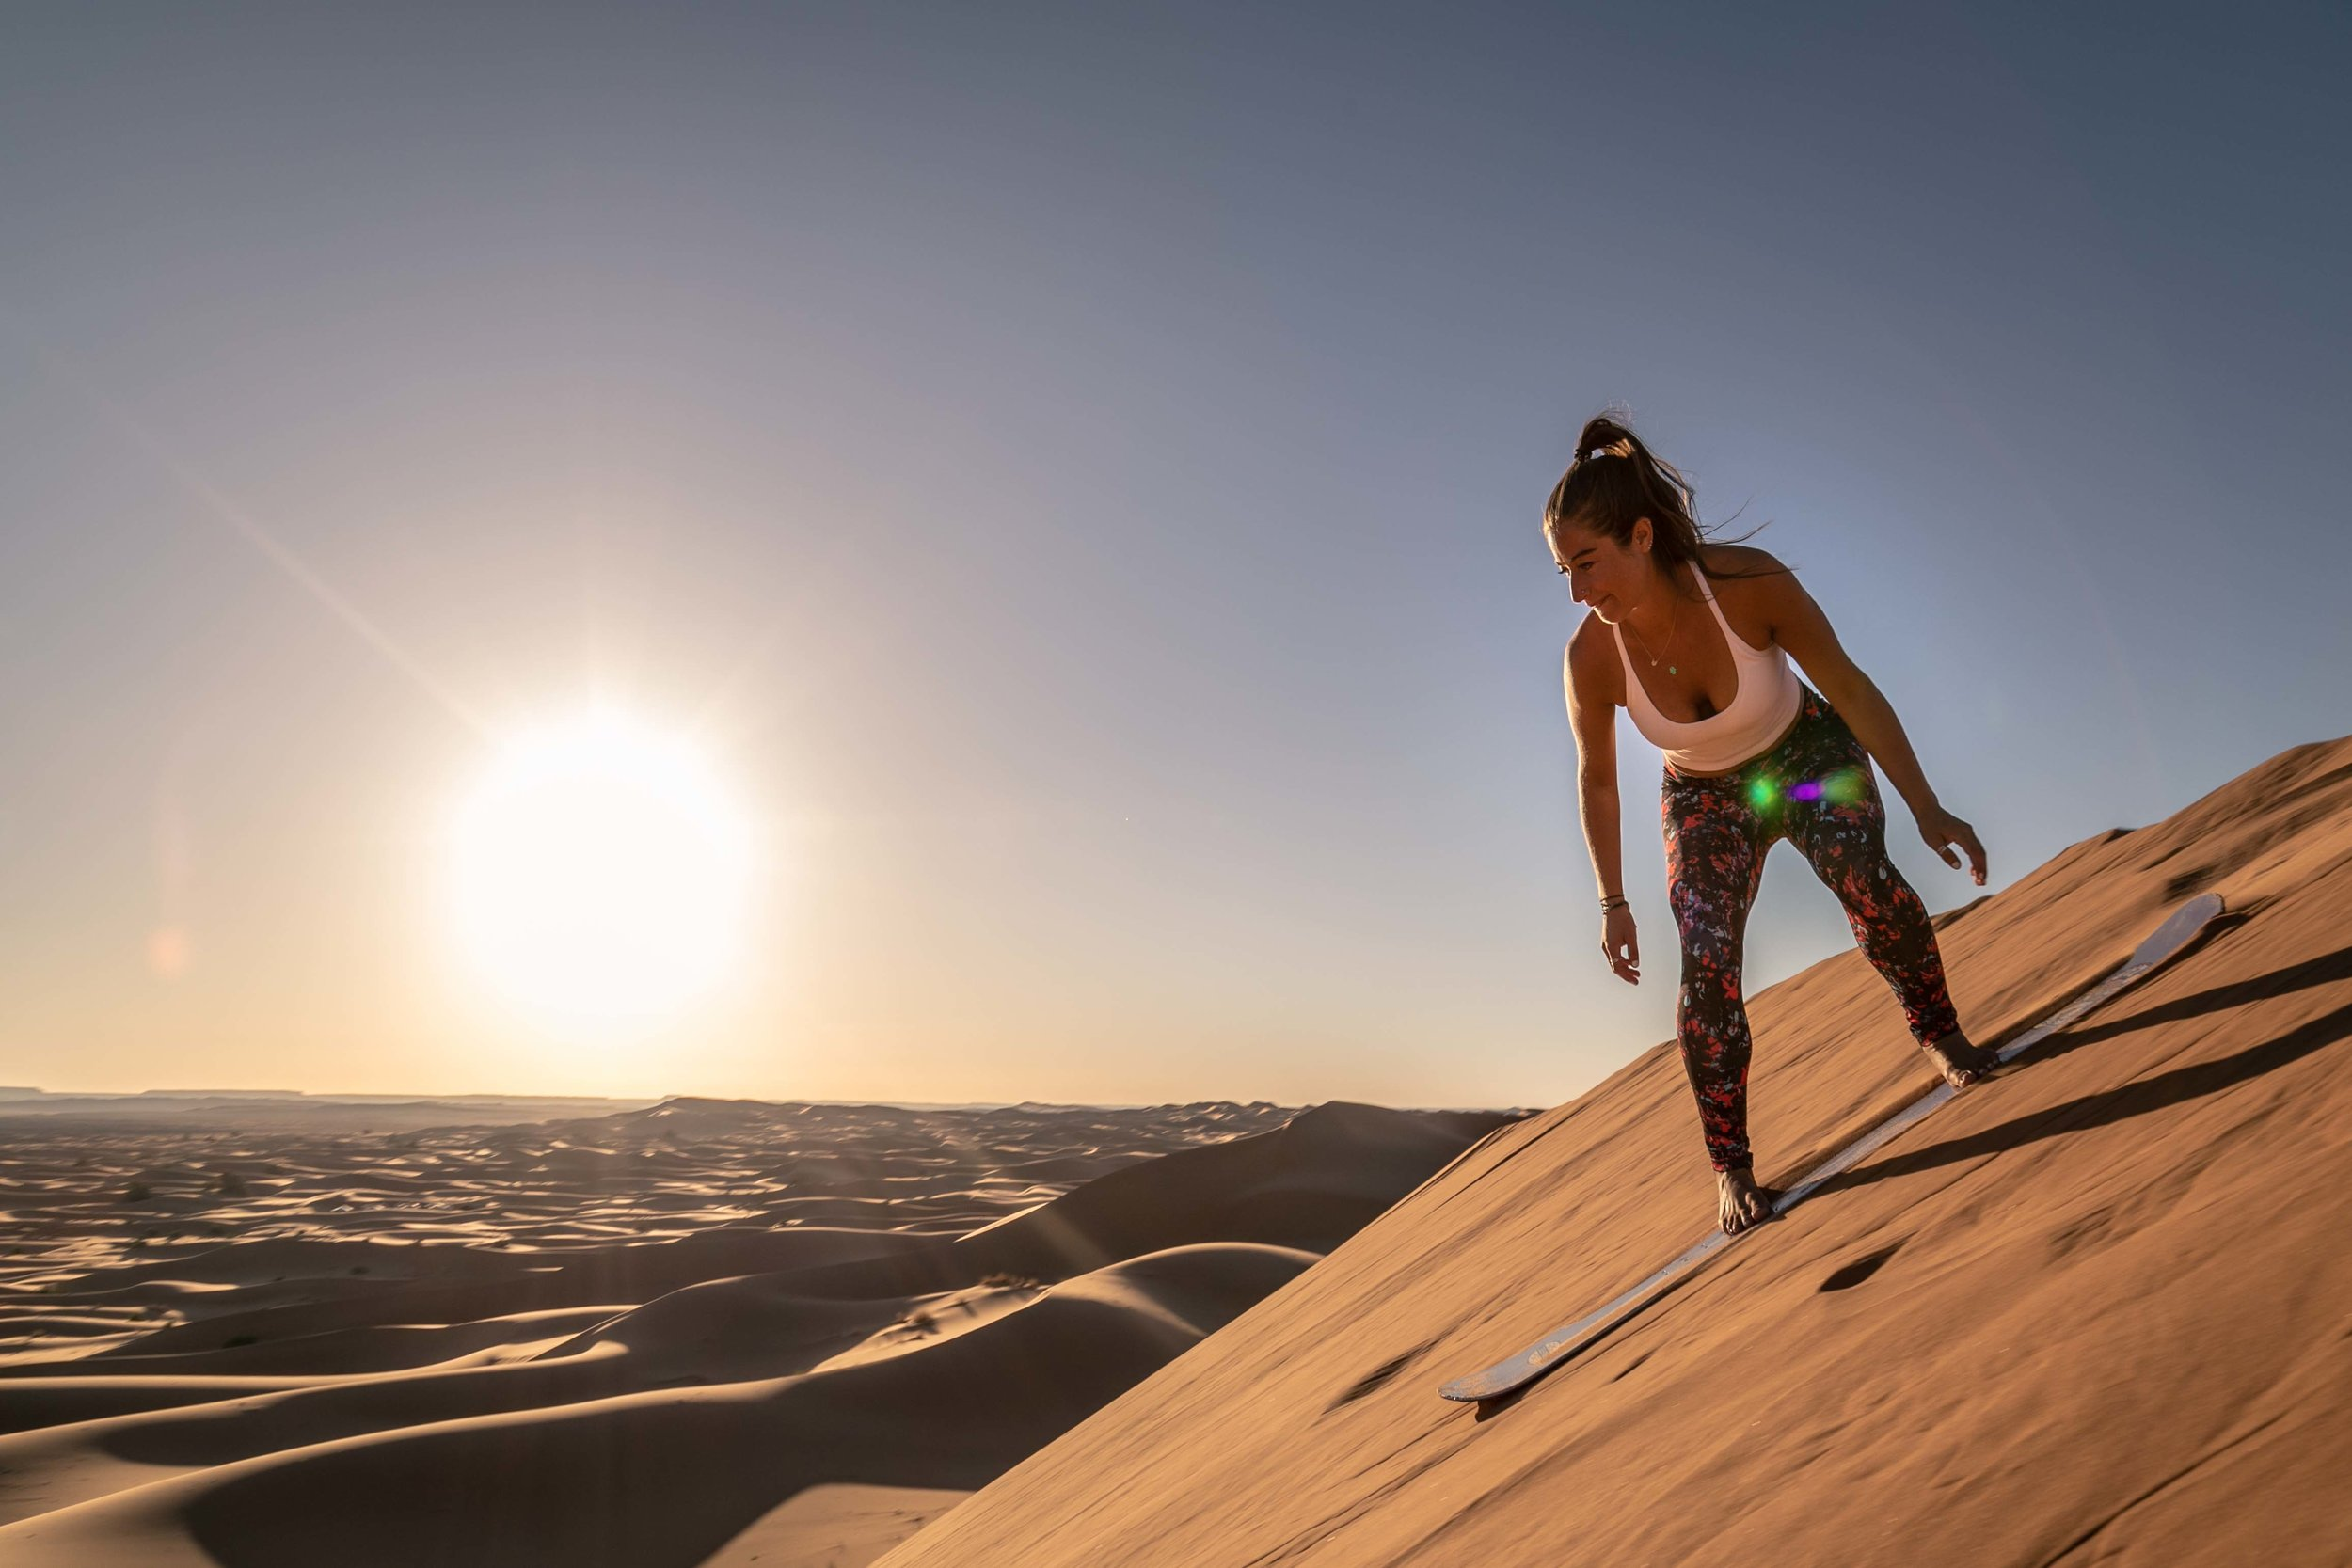 Sand boarding the Sahara desert